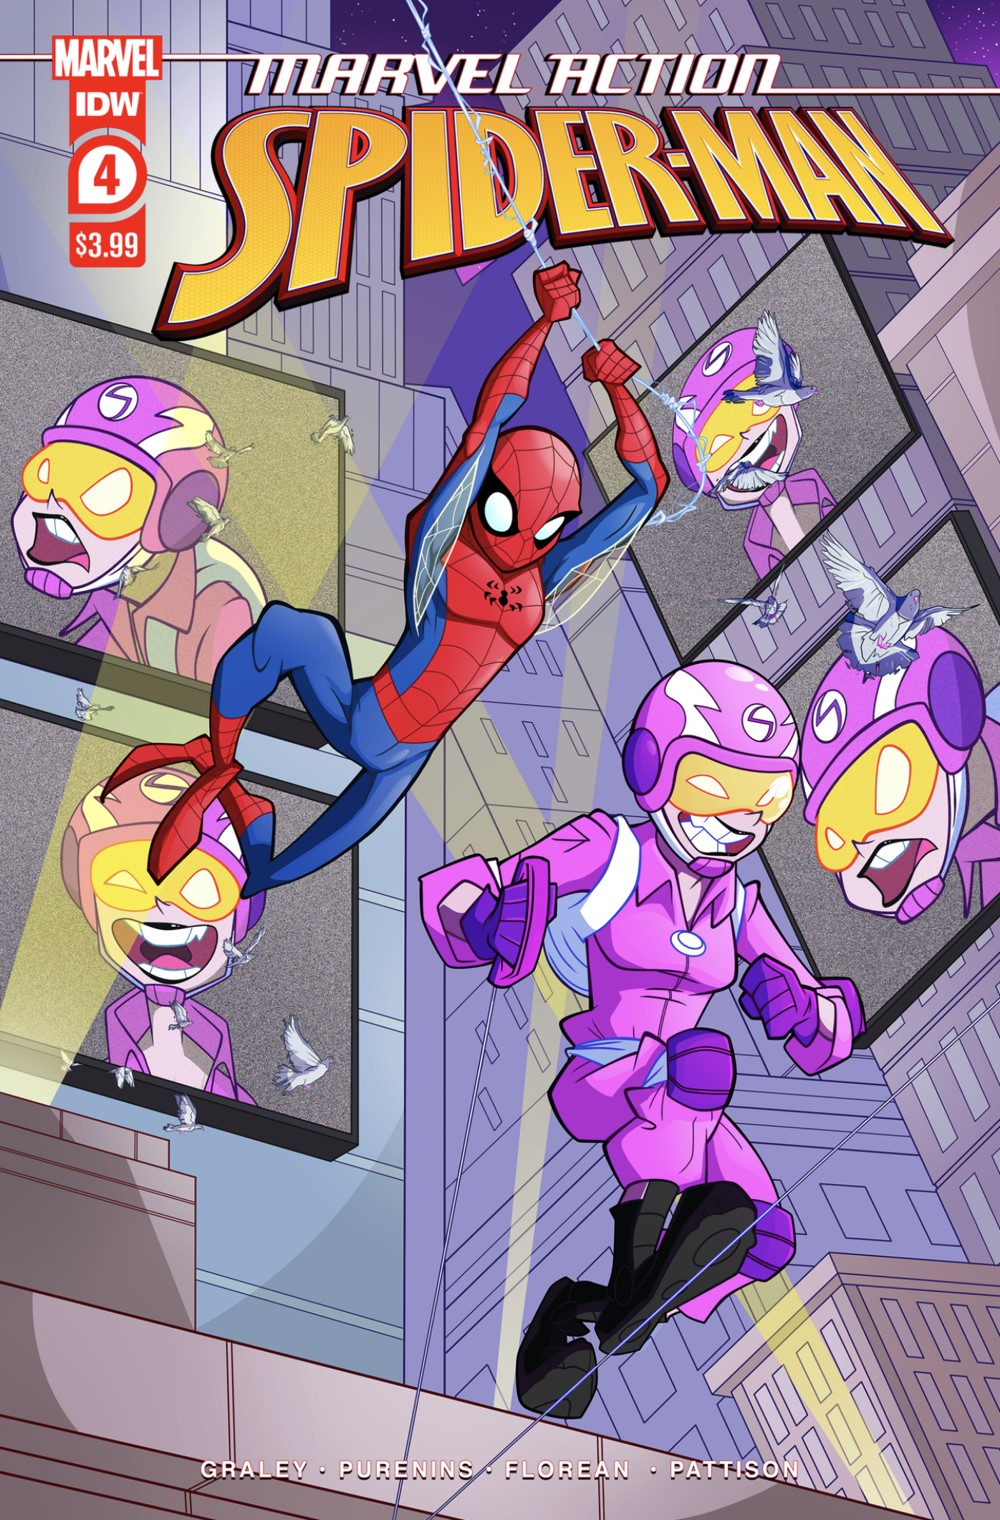 MARVEL-ACTION-SPIDER-MAN-VOL.-3-4-COVER-A ComicList: IDW Publishing New Releases for 07/21/2021